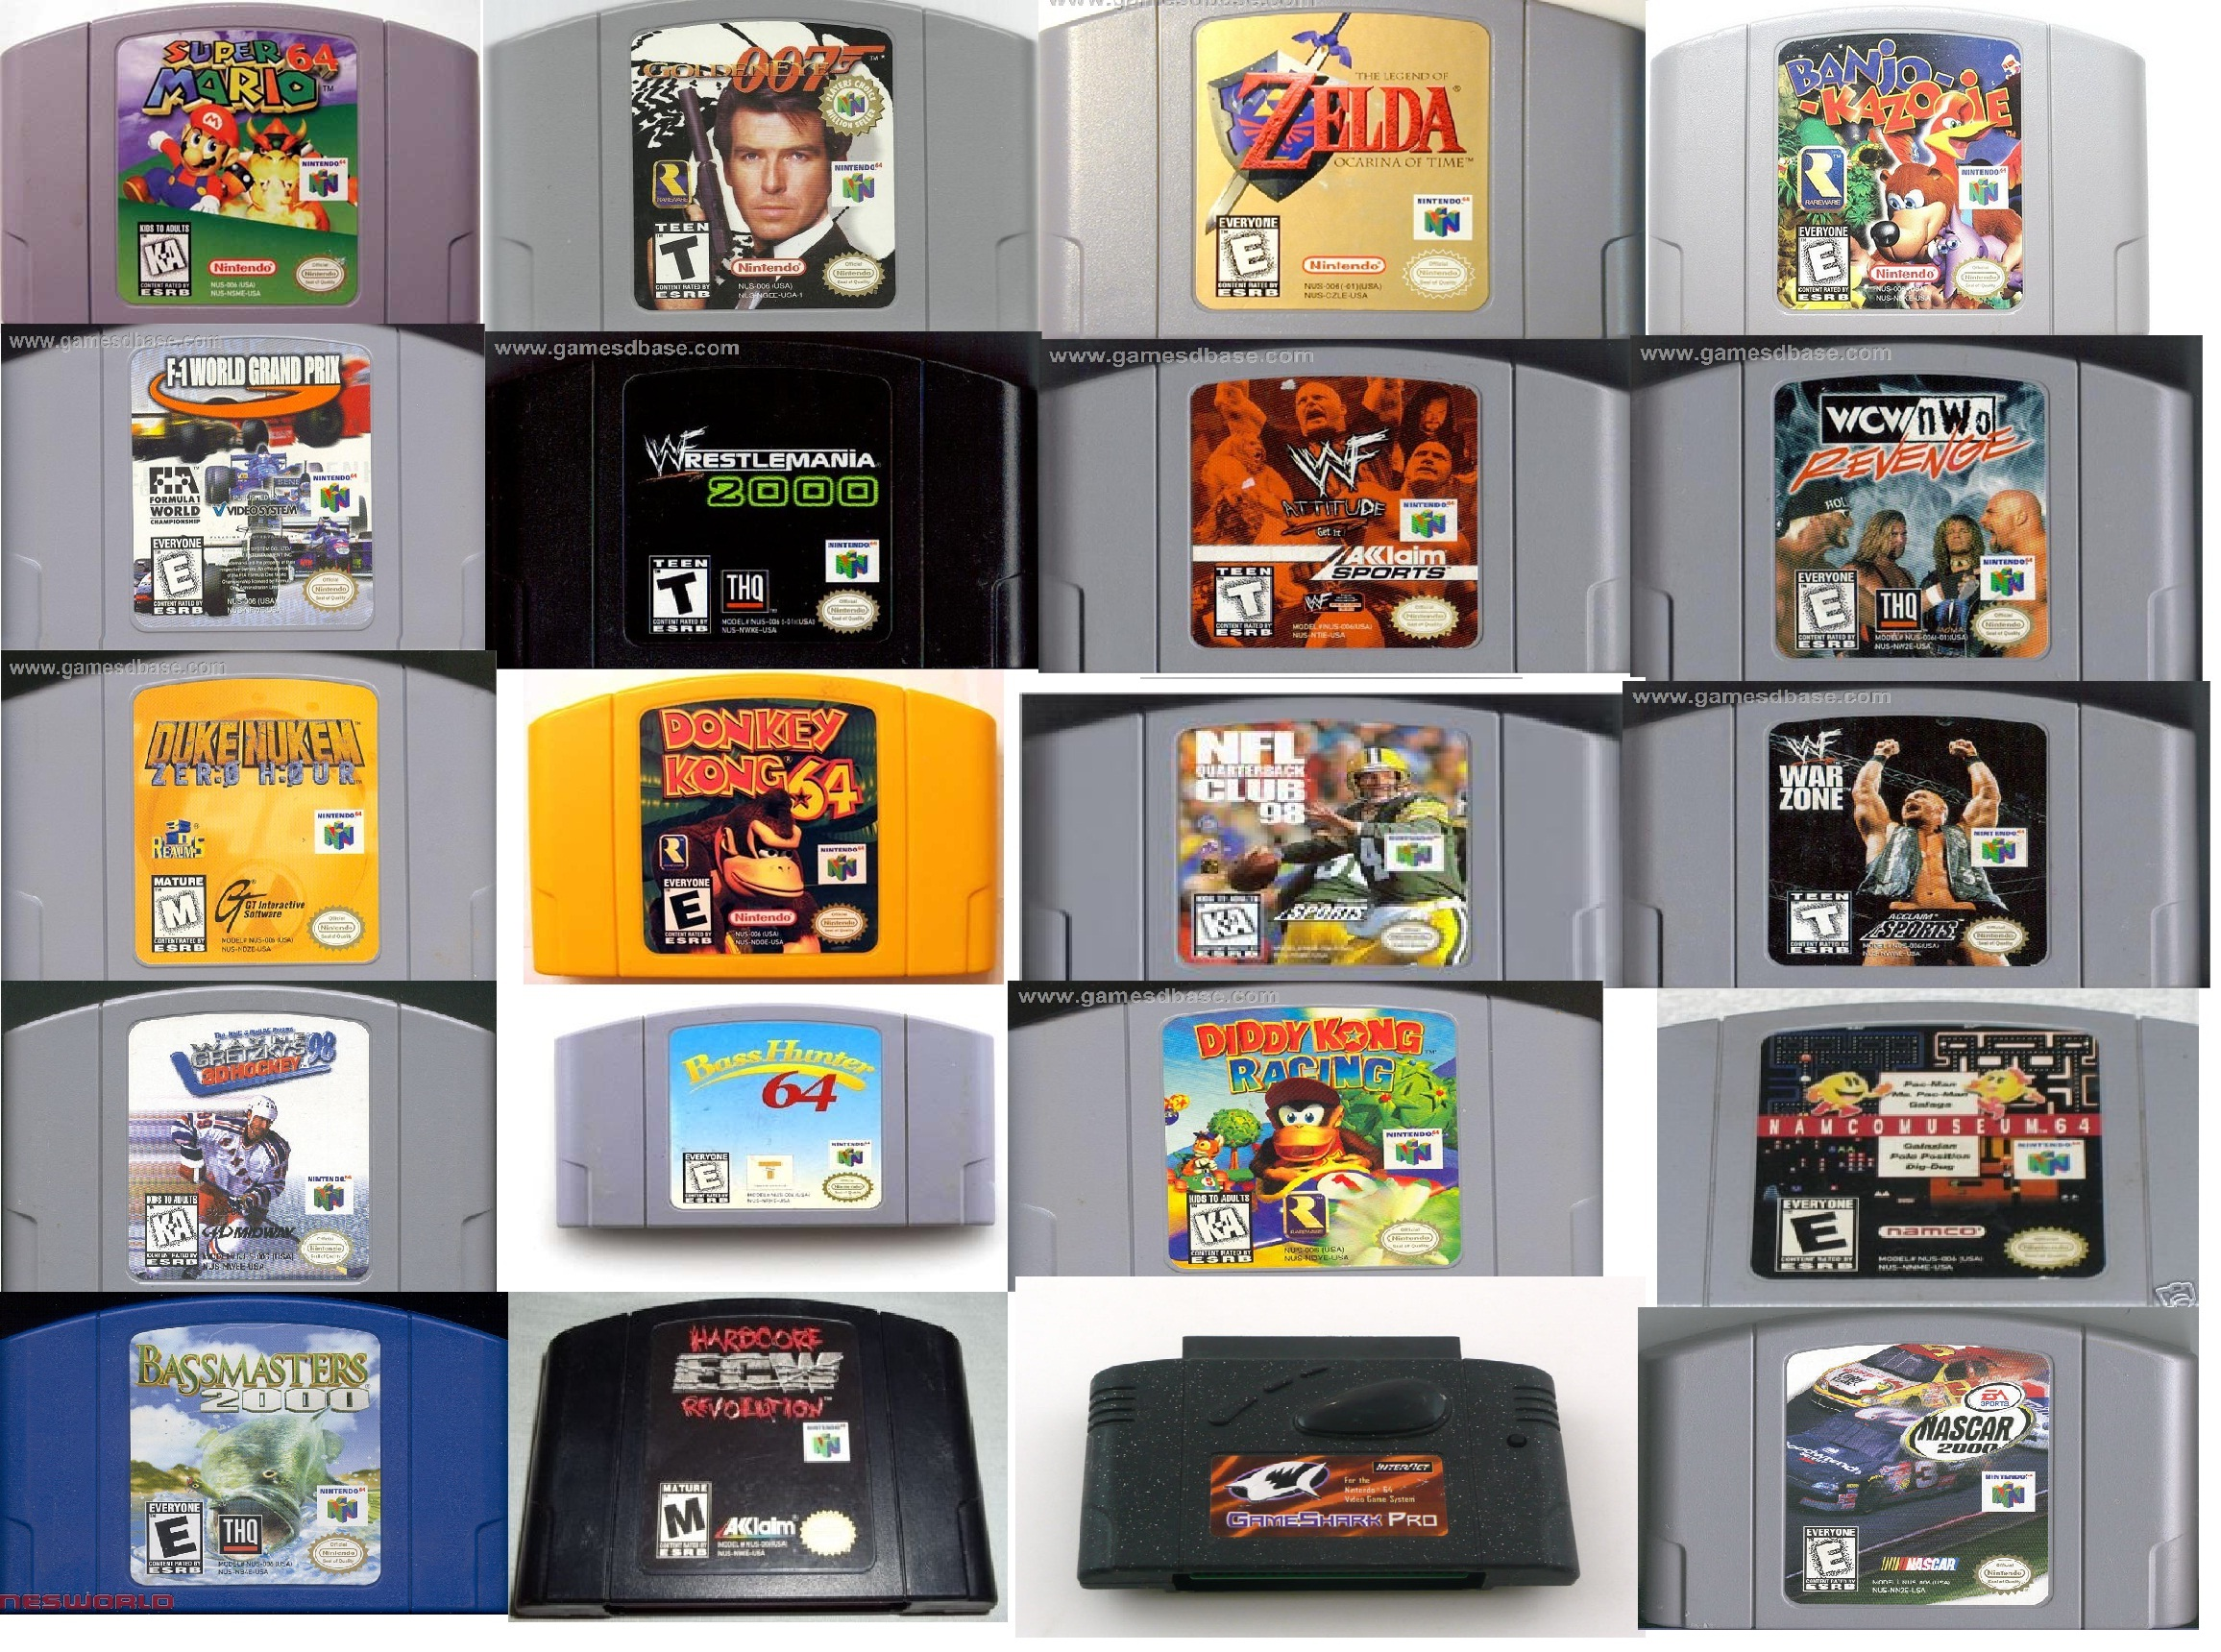 Games for the Nintendo 64